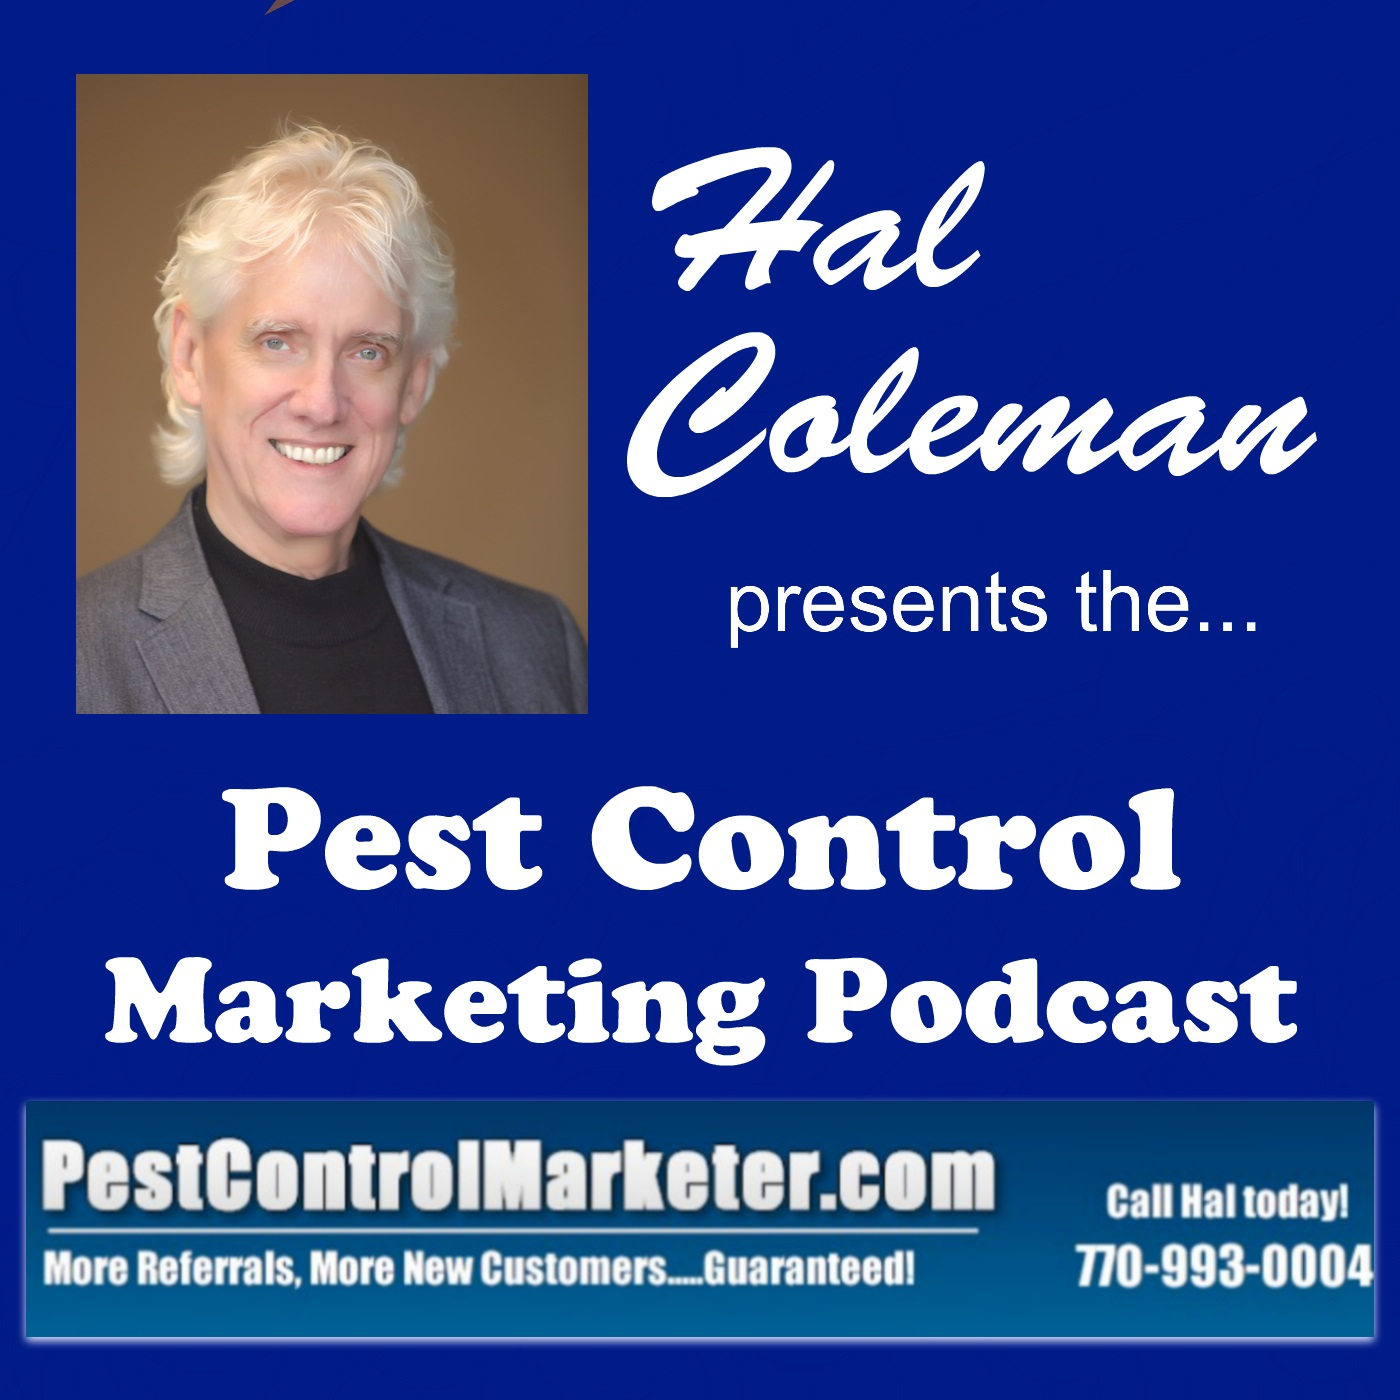 Pest Control Marketing Podcast